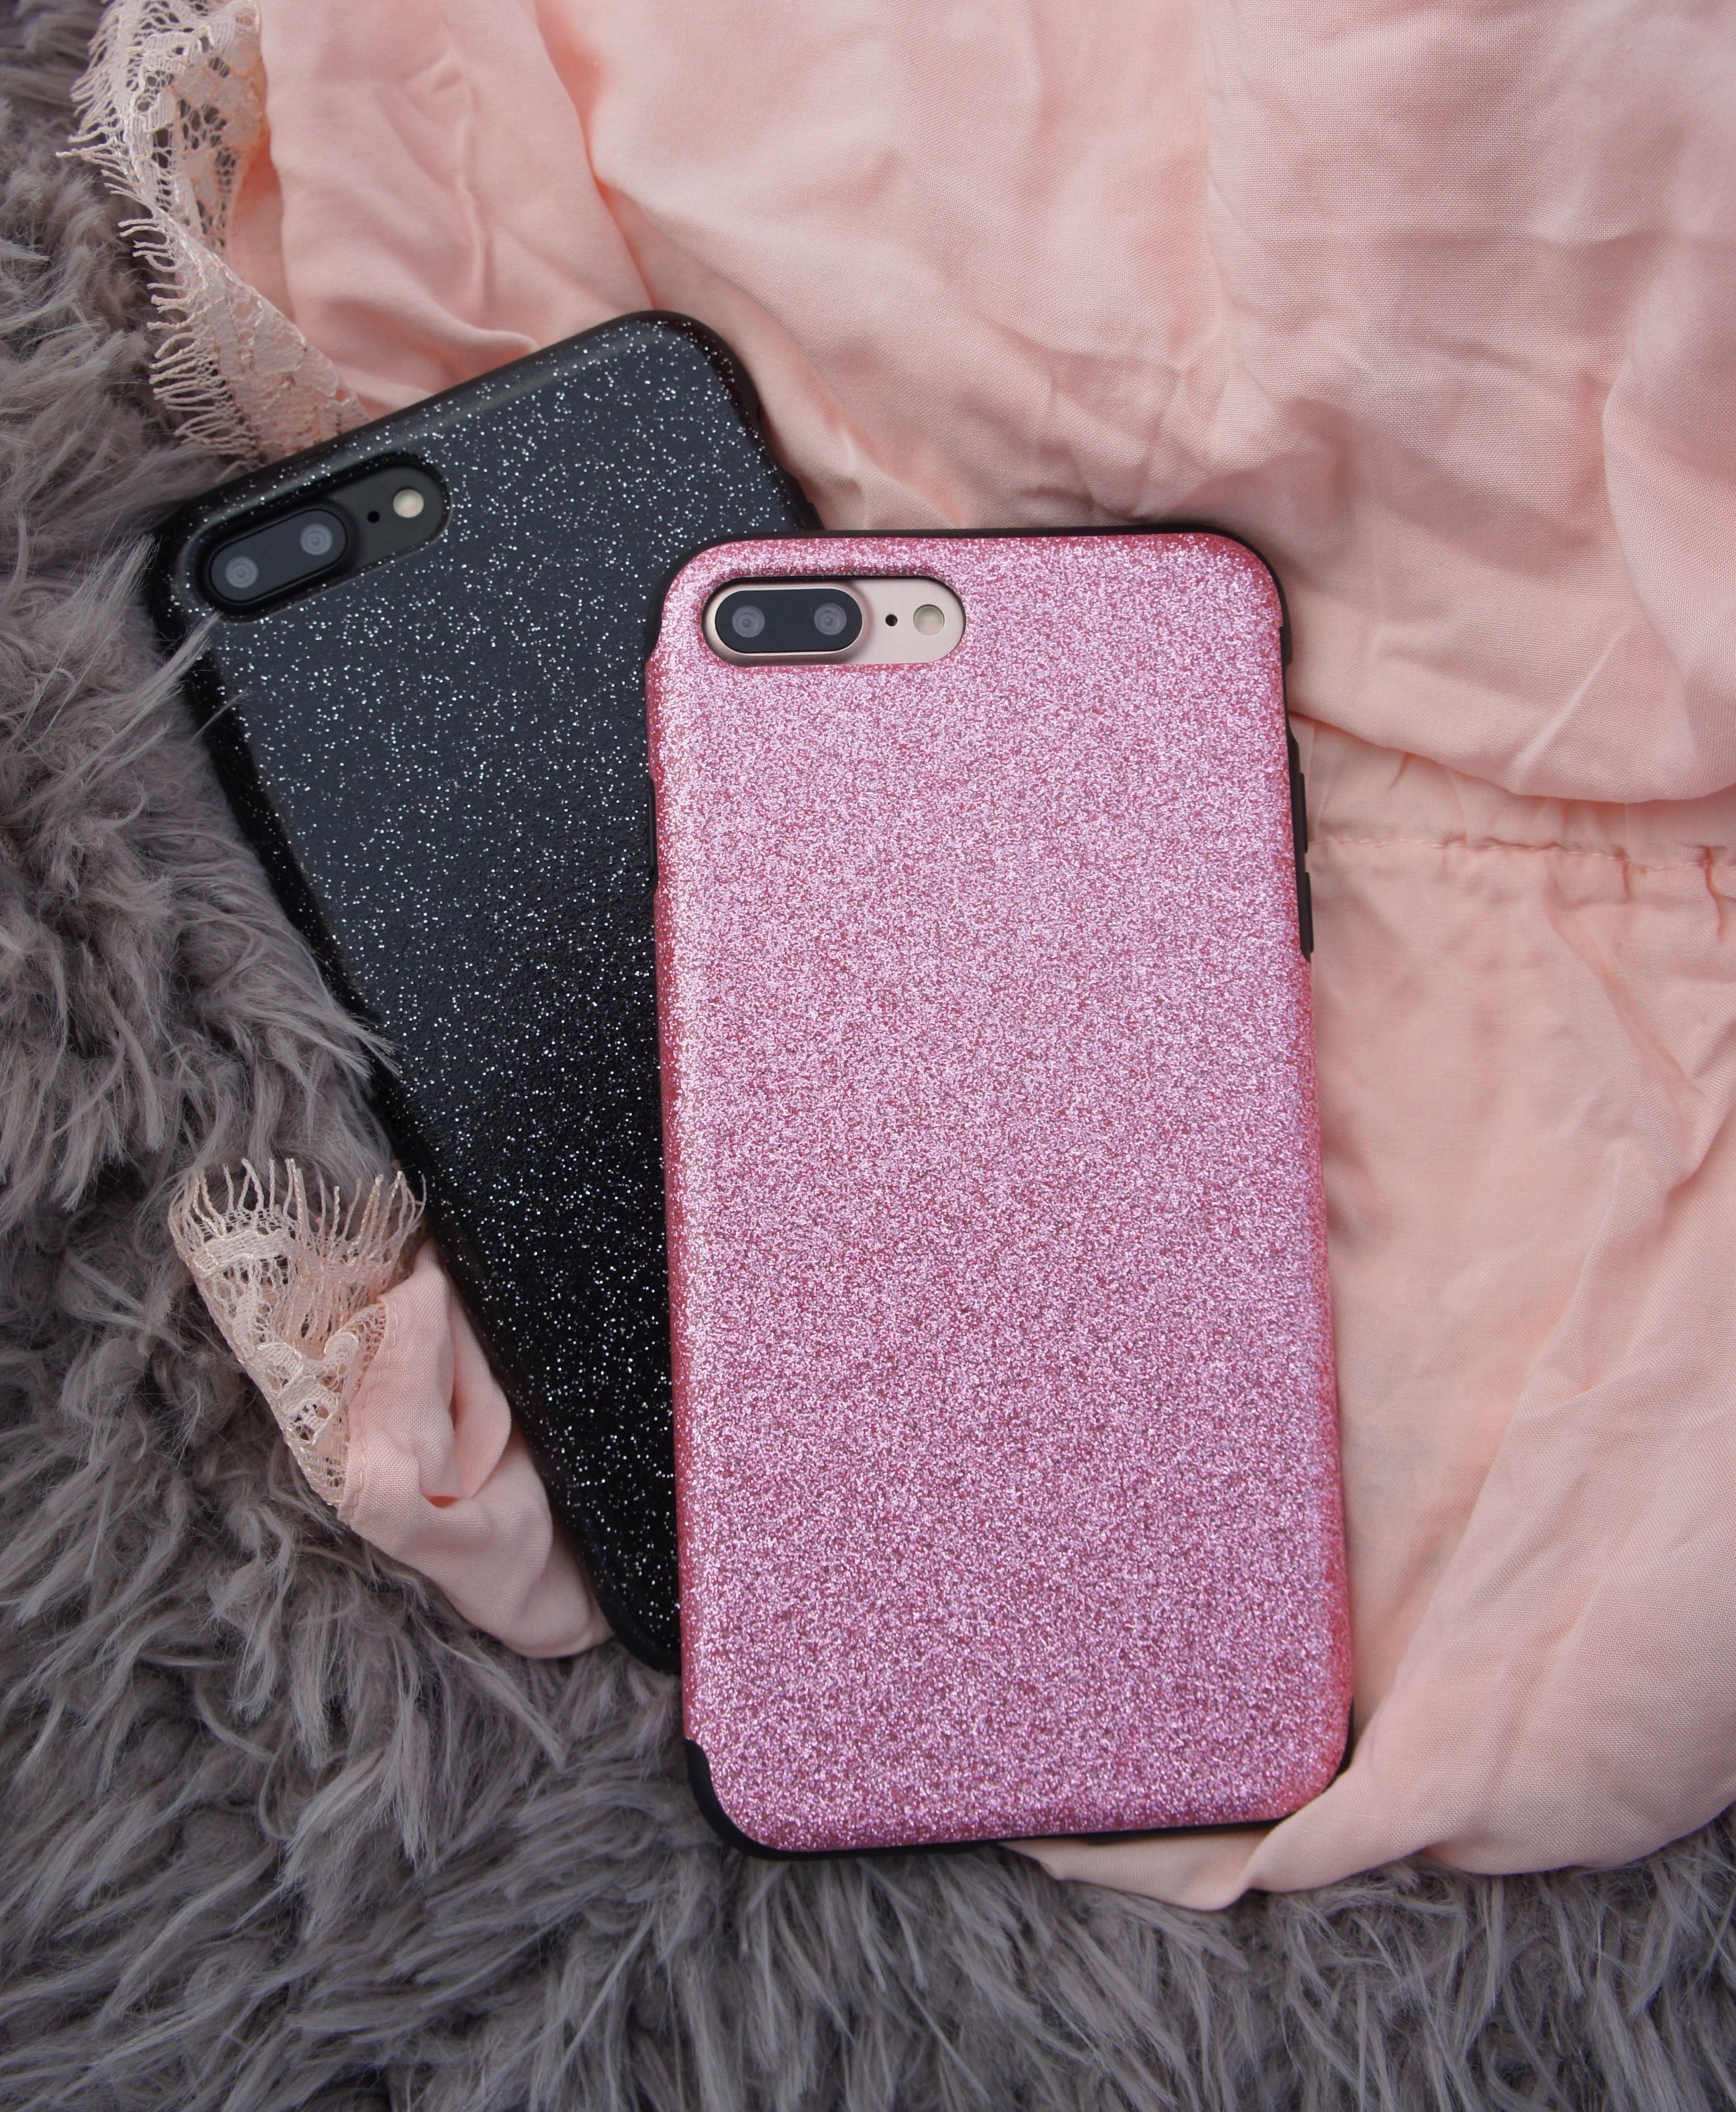 That nighttime Glam ✨ Glam Case in Black & Pink for iPhone 7 & iPhone 7 Plus from Elemental Cases